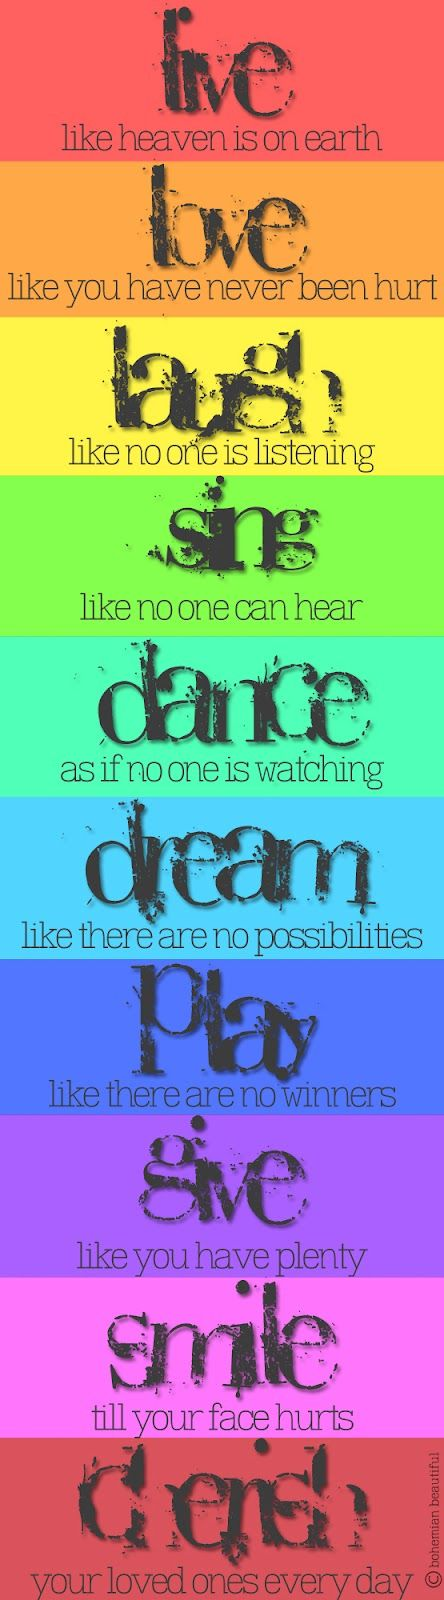 Give One Dream